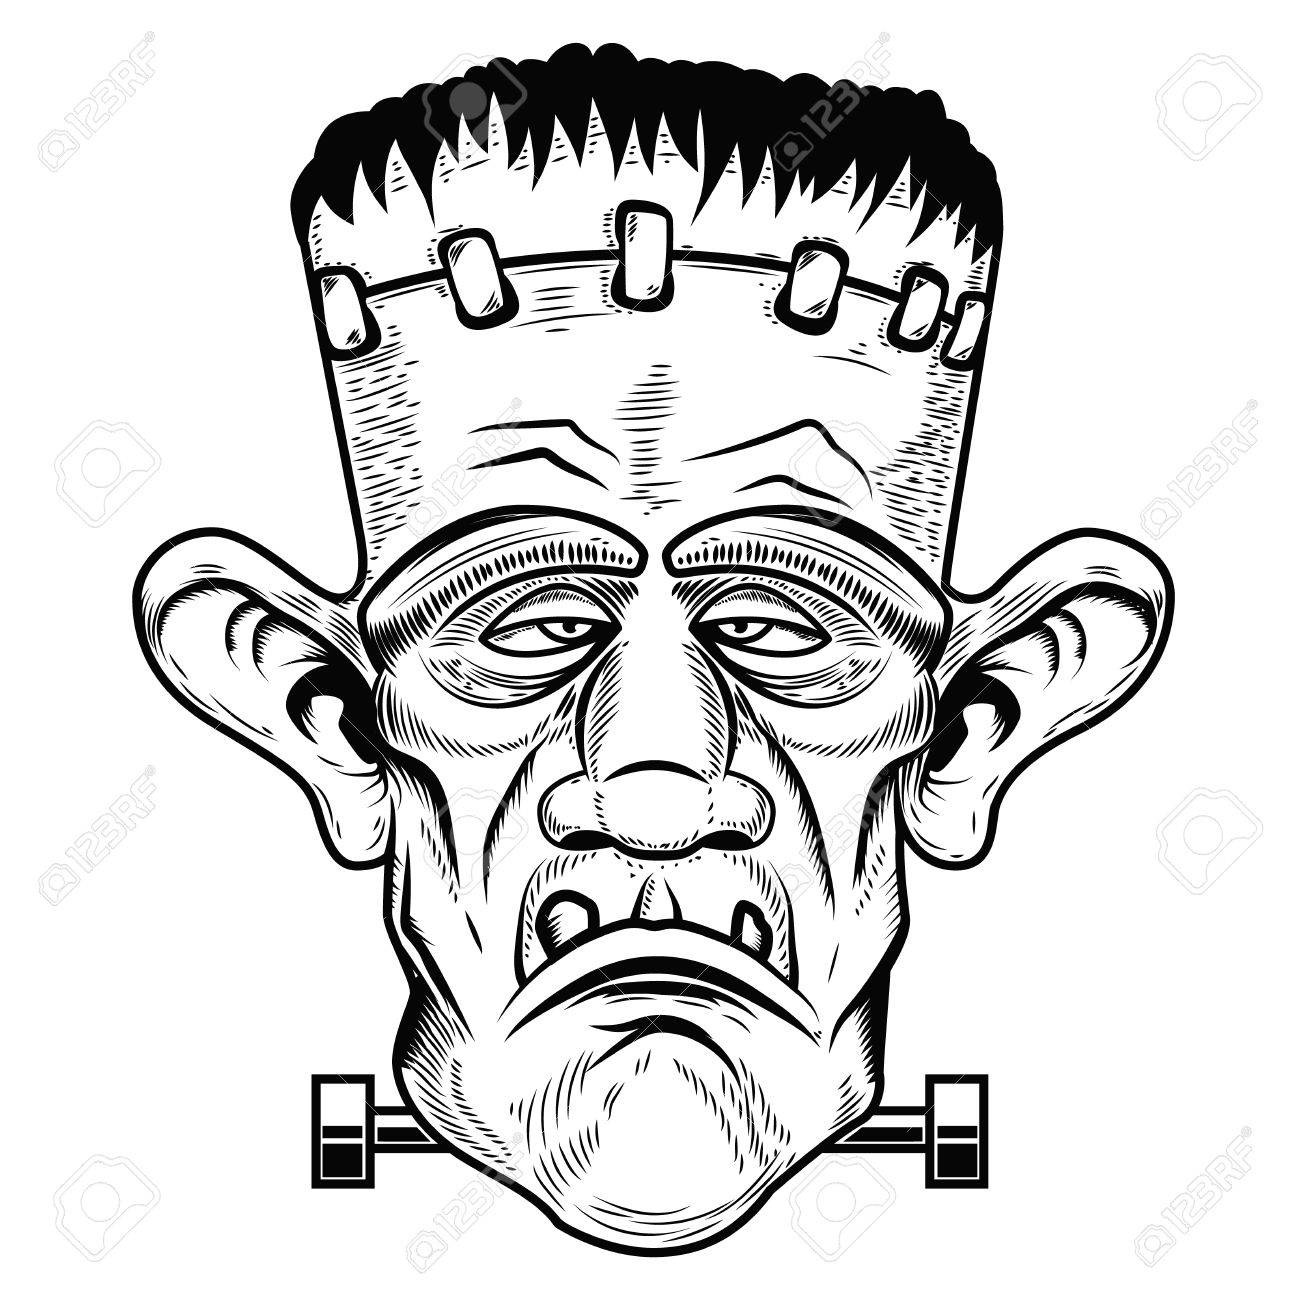 Zombie Head Drawing At Getdrawings Com Free For Personal Use